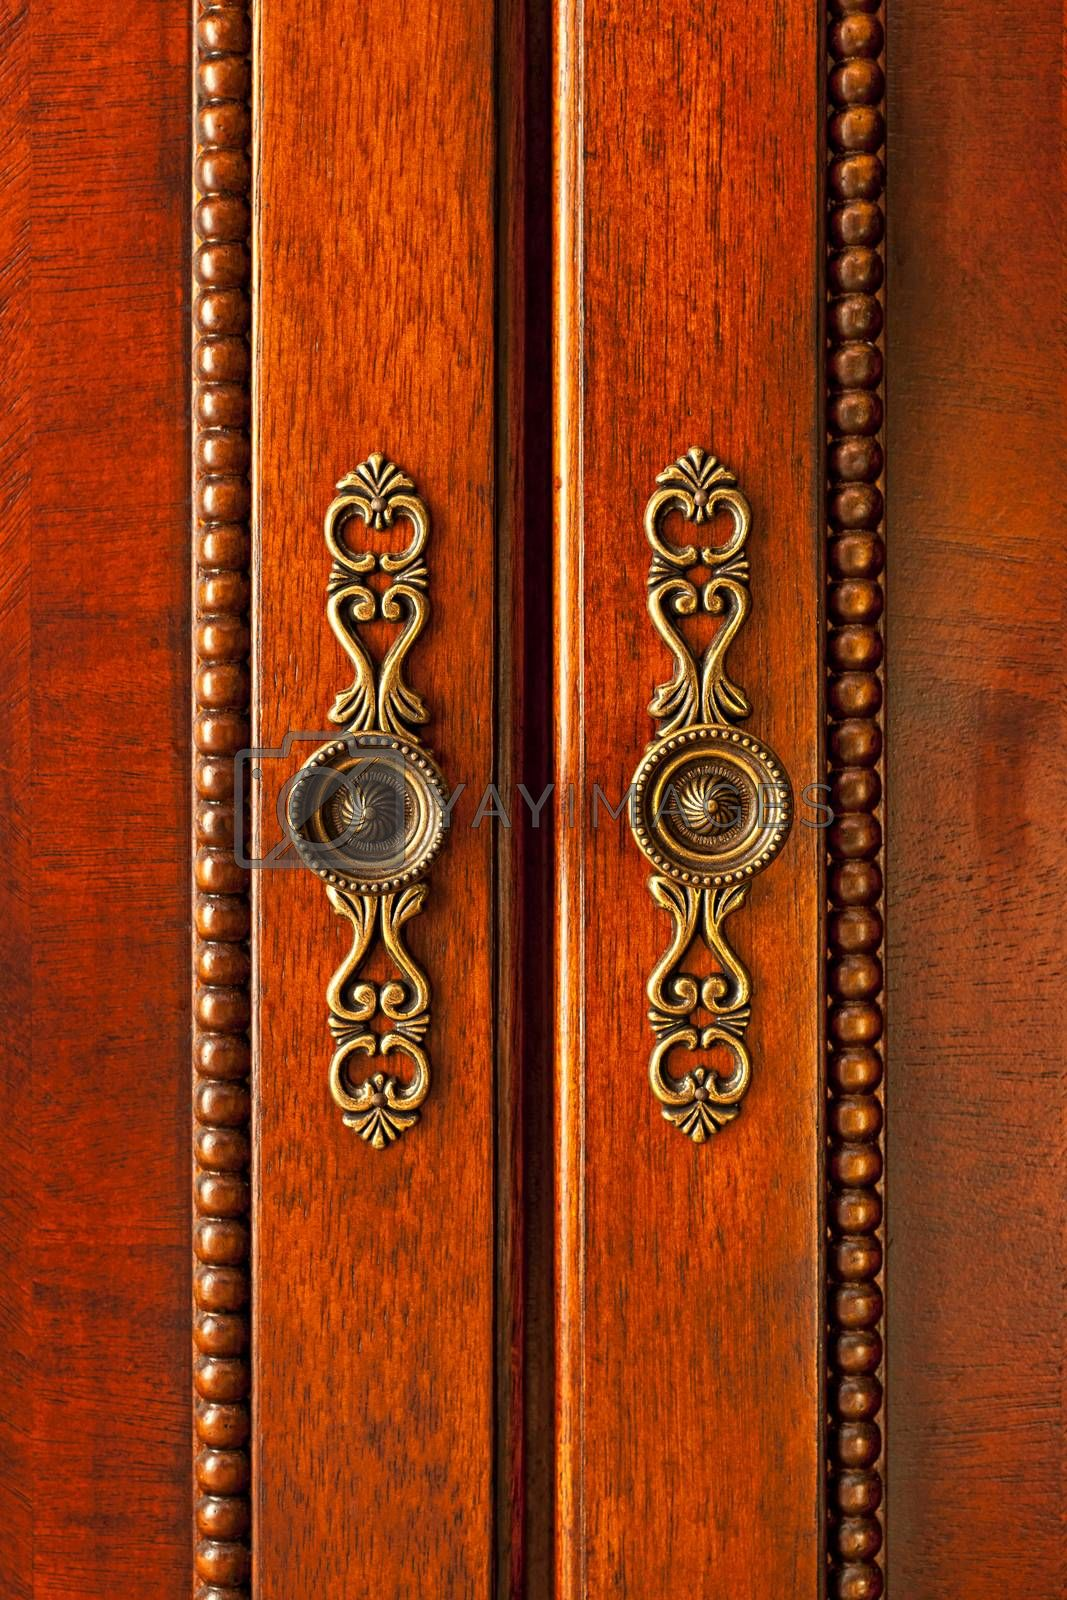 Ornate handles on wooden cabinet doors closeup